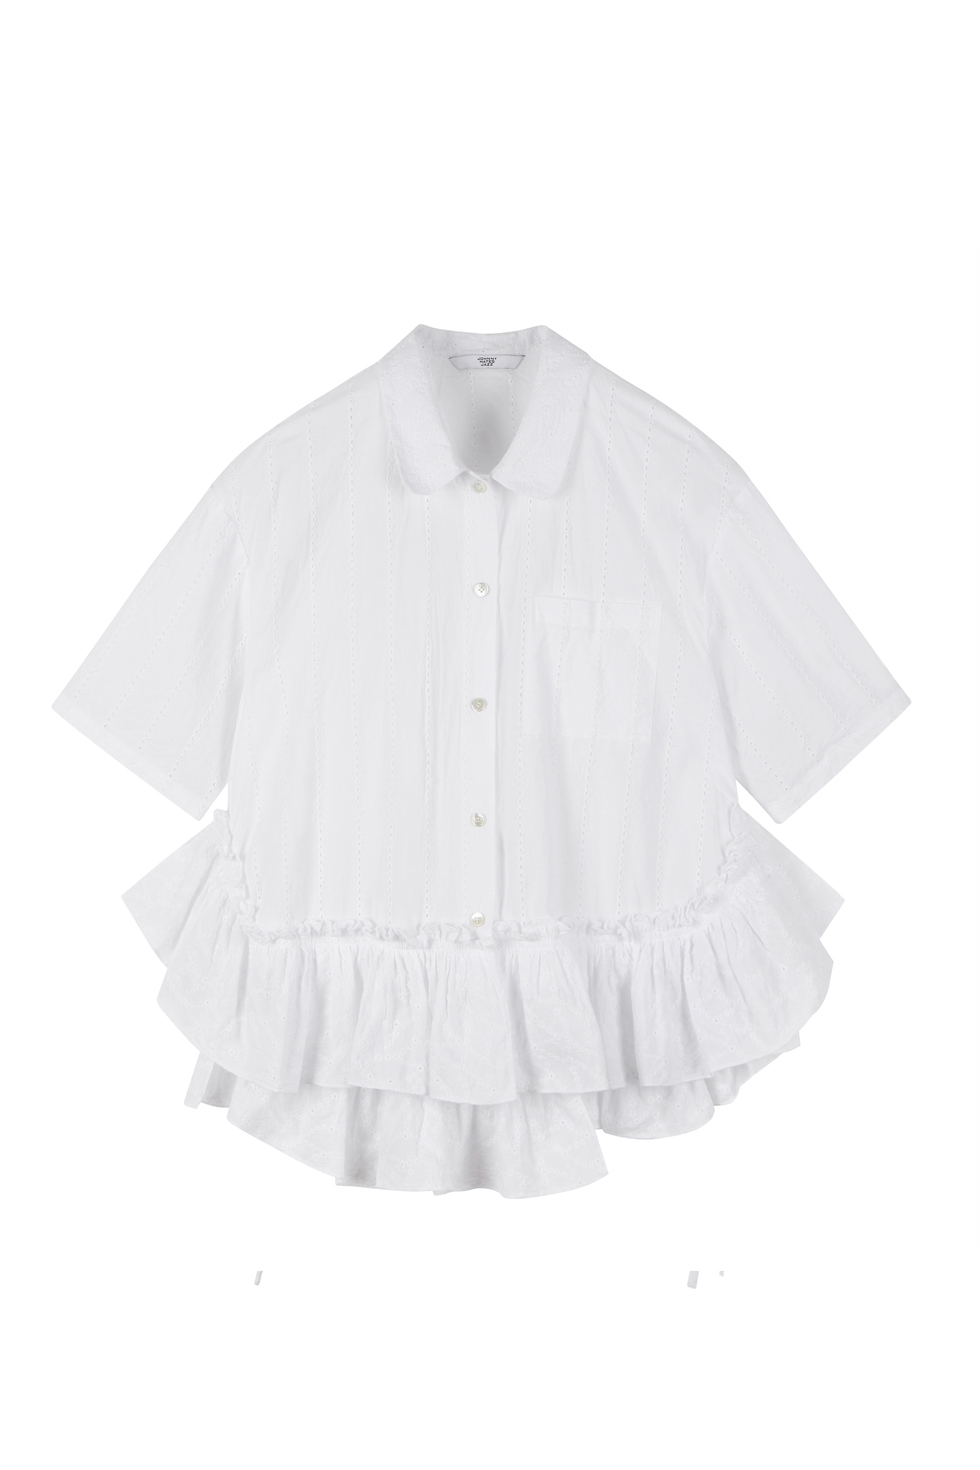 OVERSIZED RUFFLE SHIRTS - WHITE